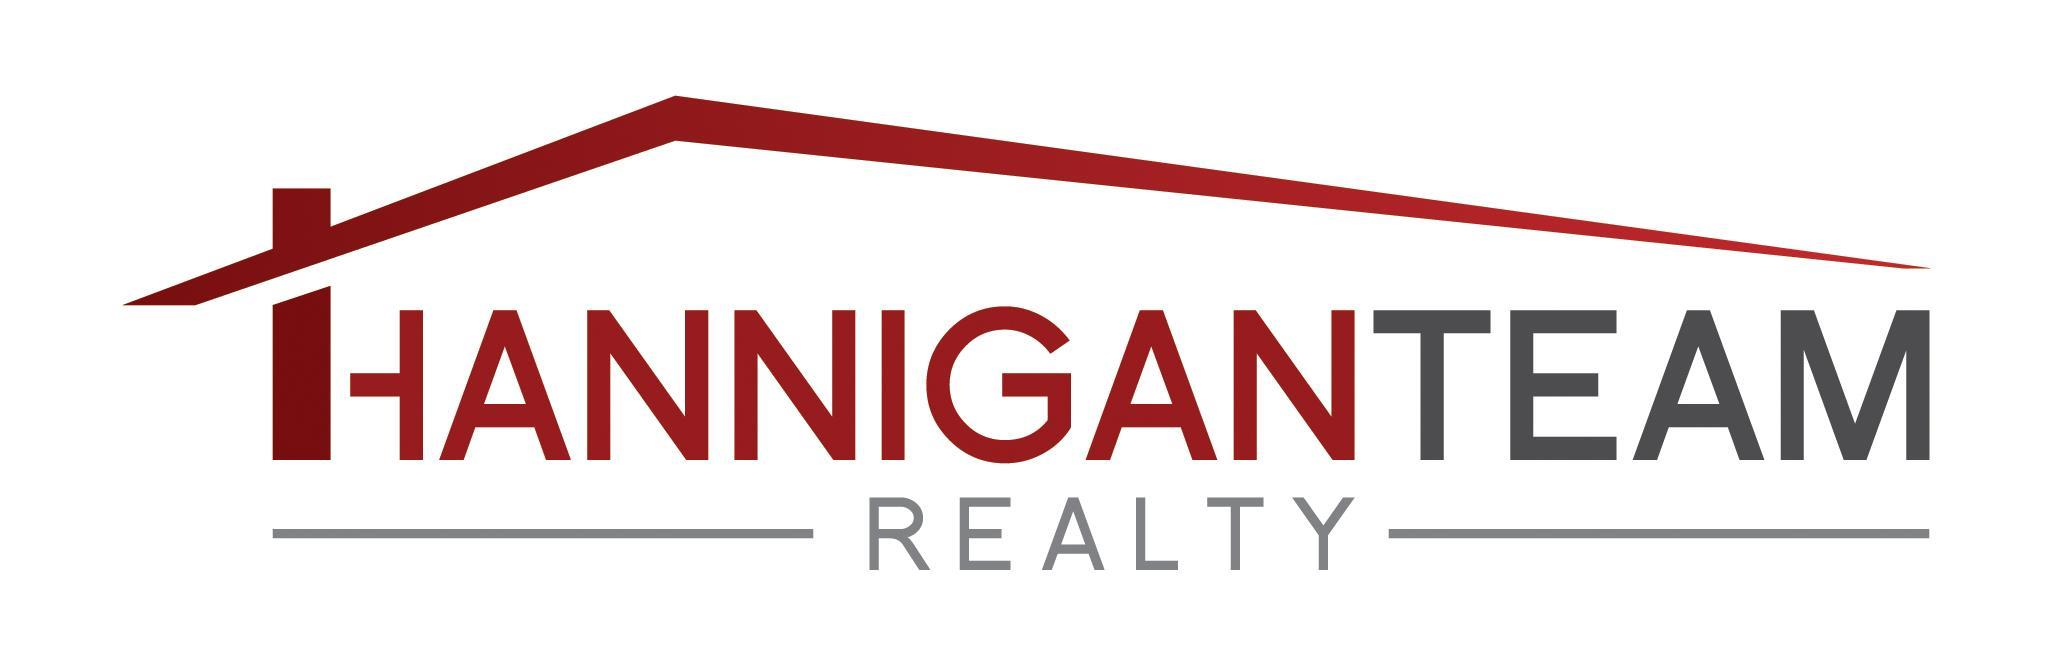 The Hannigan Team Realty logo